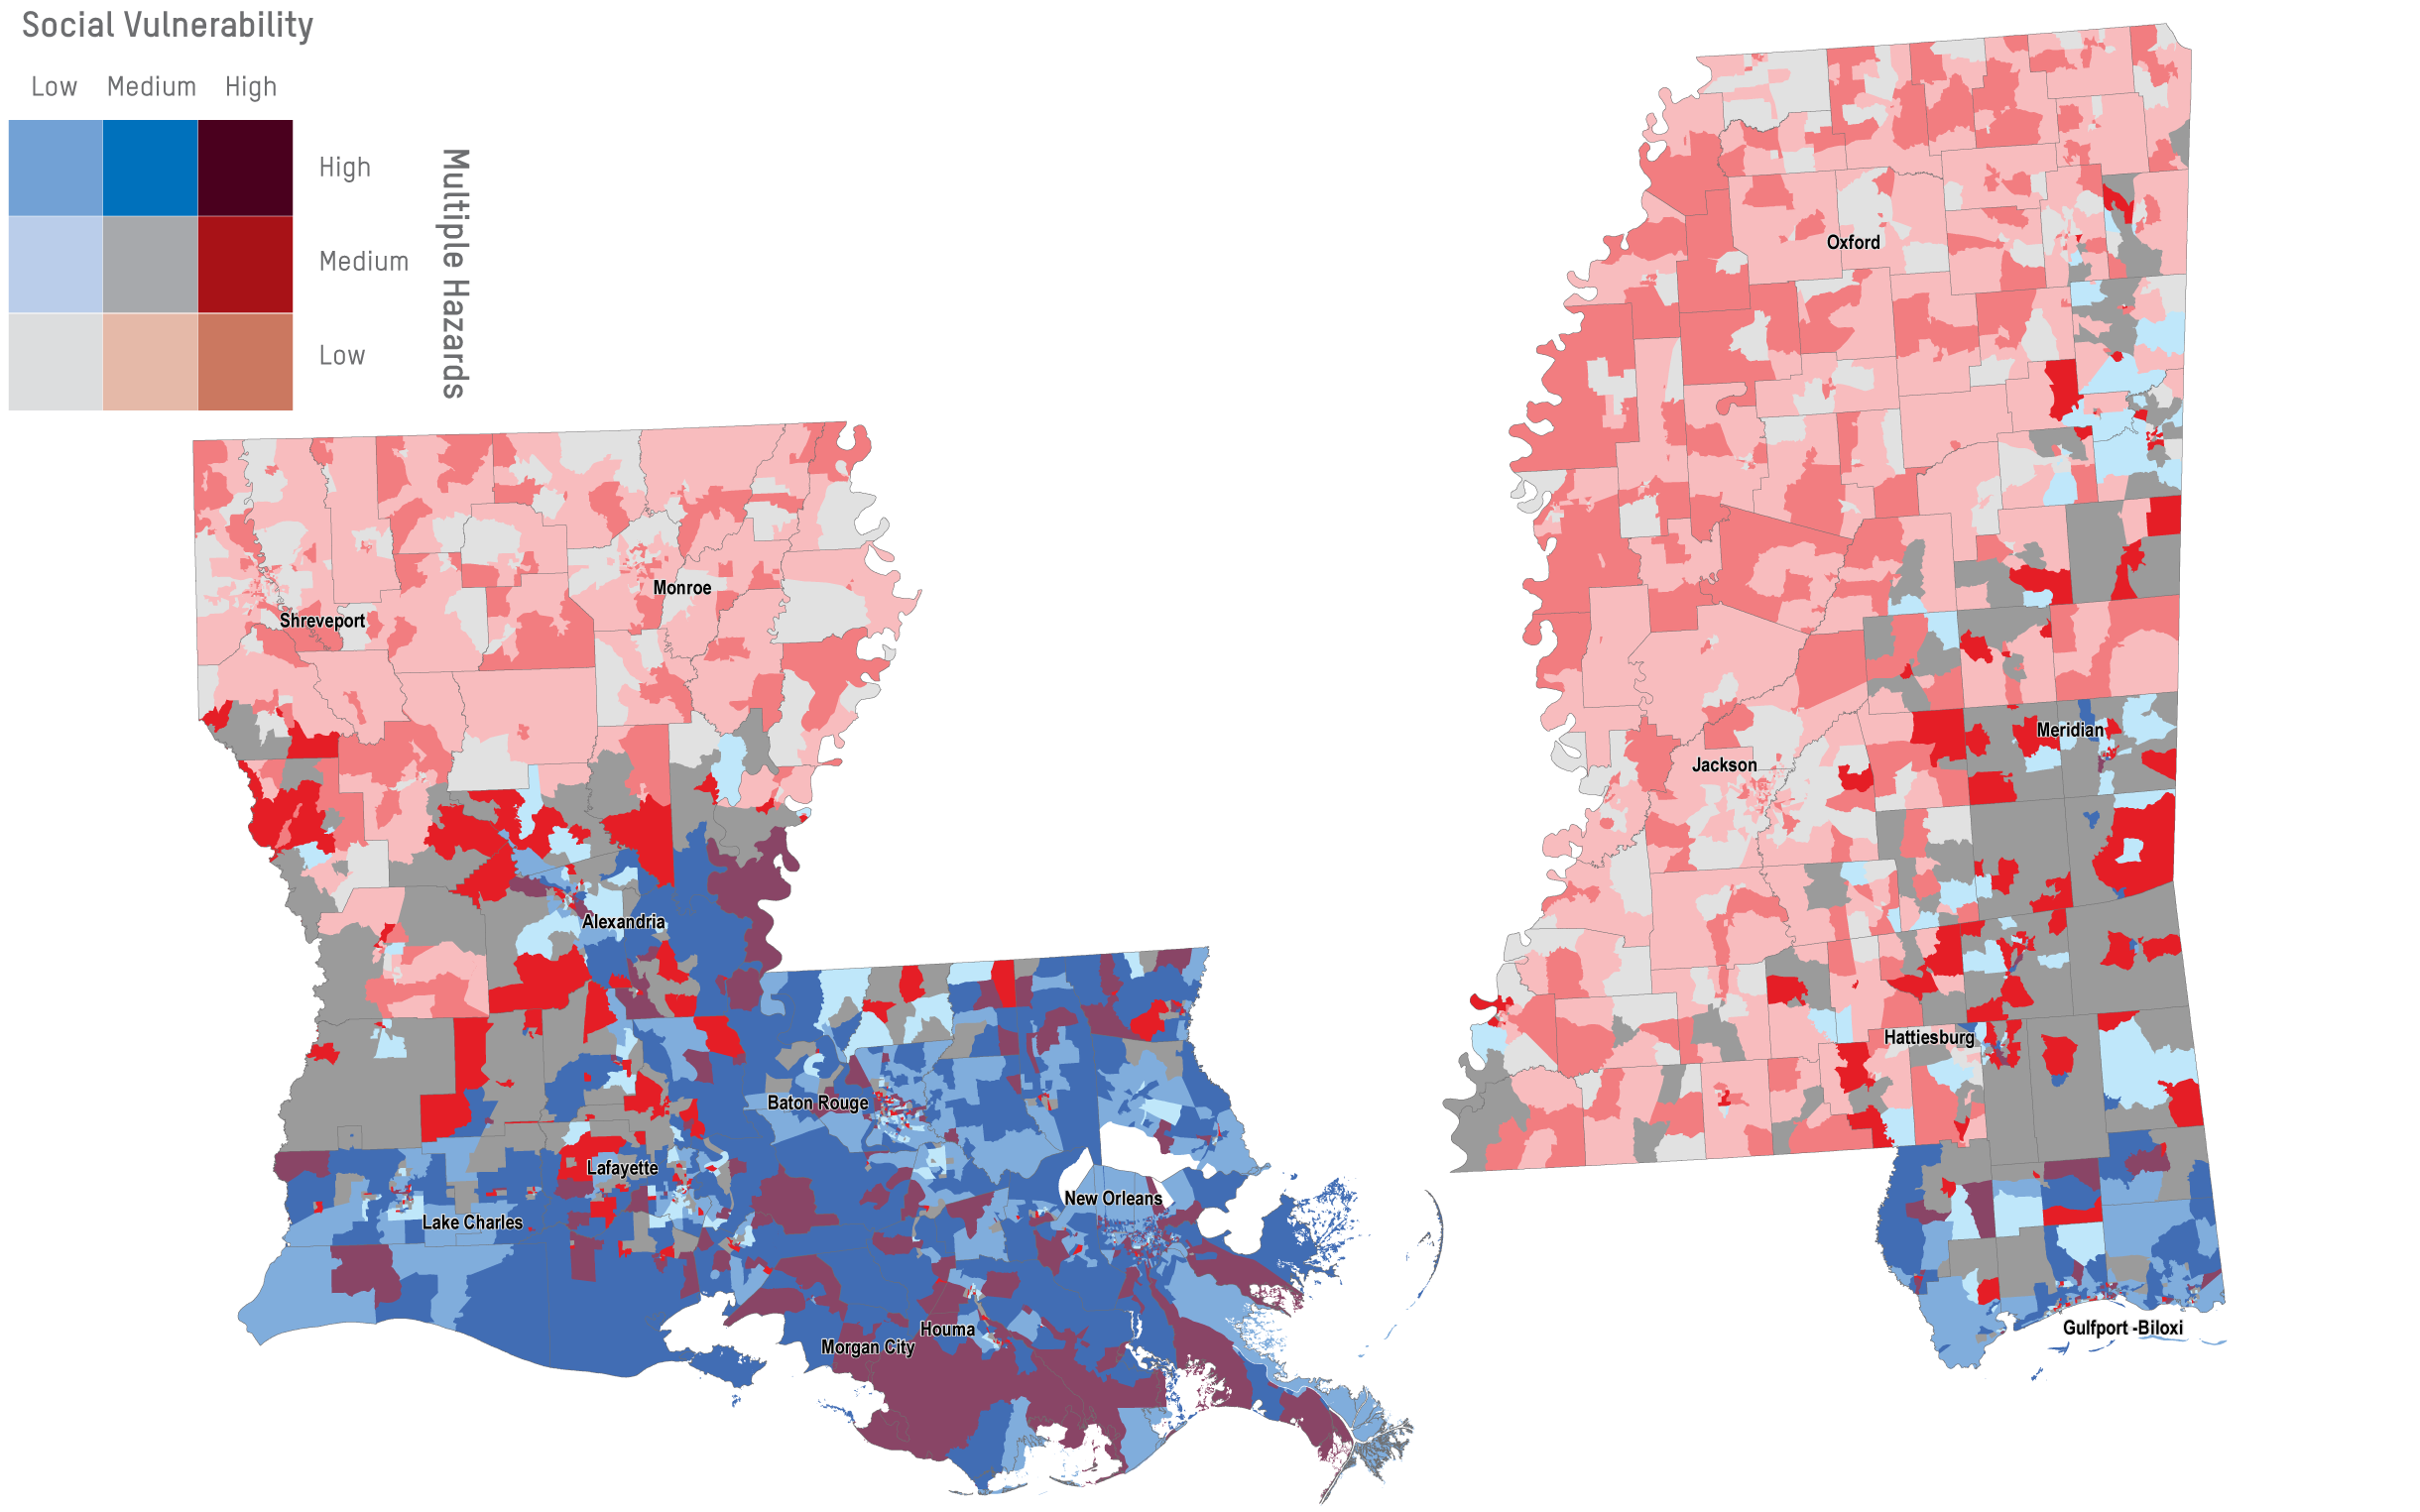 Mapping social vulnerability in Southeastern states and the Gulf ...